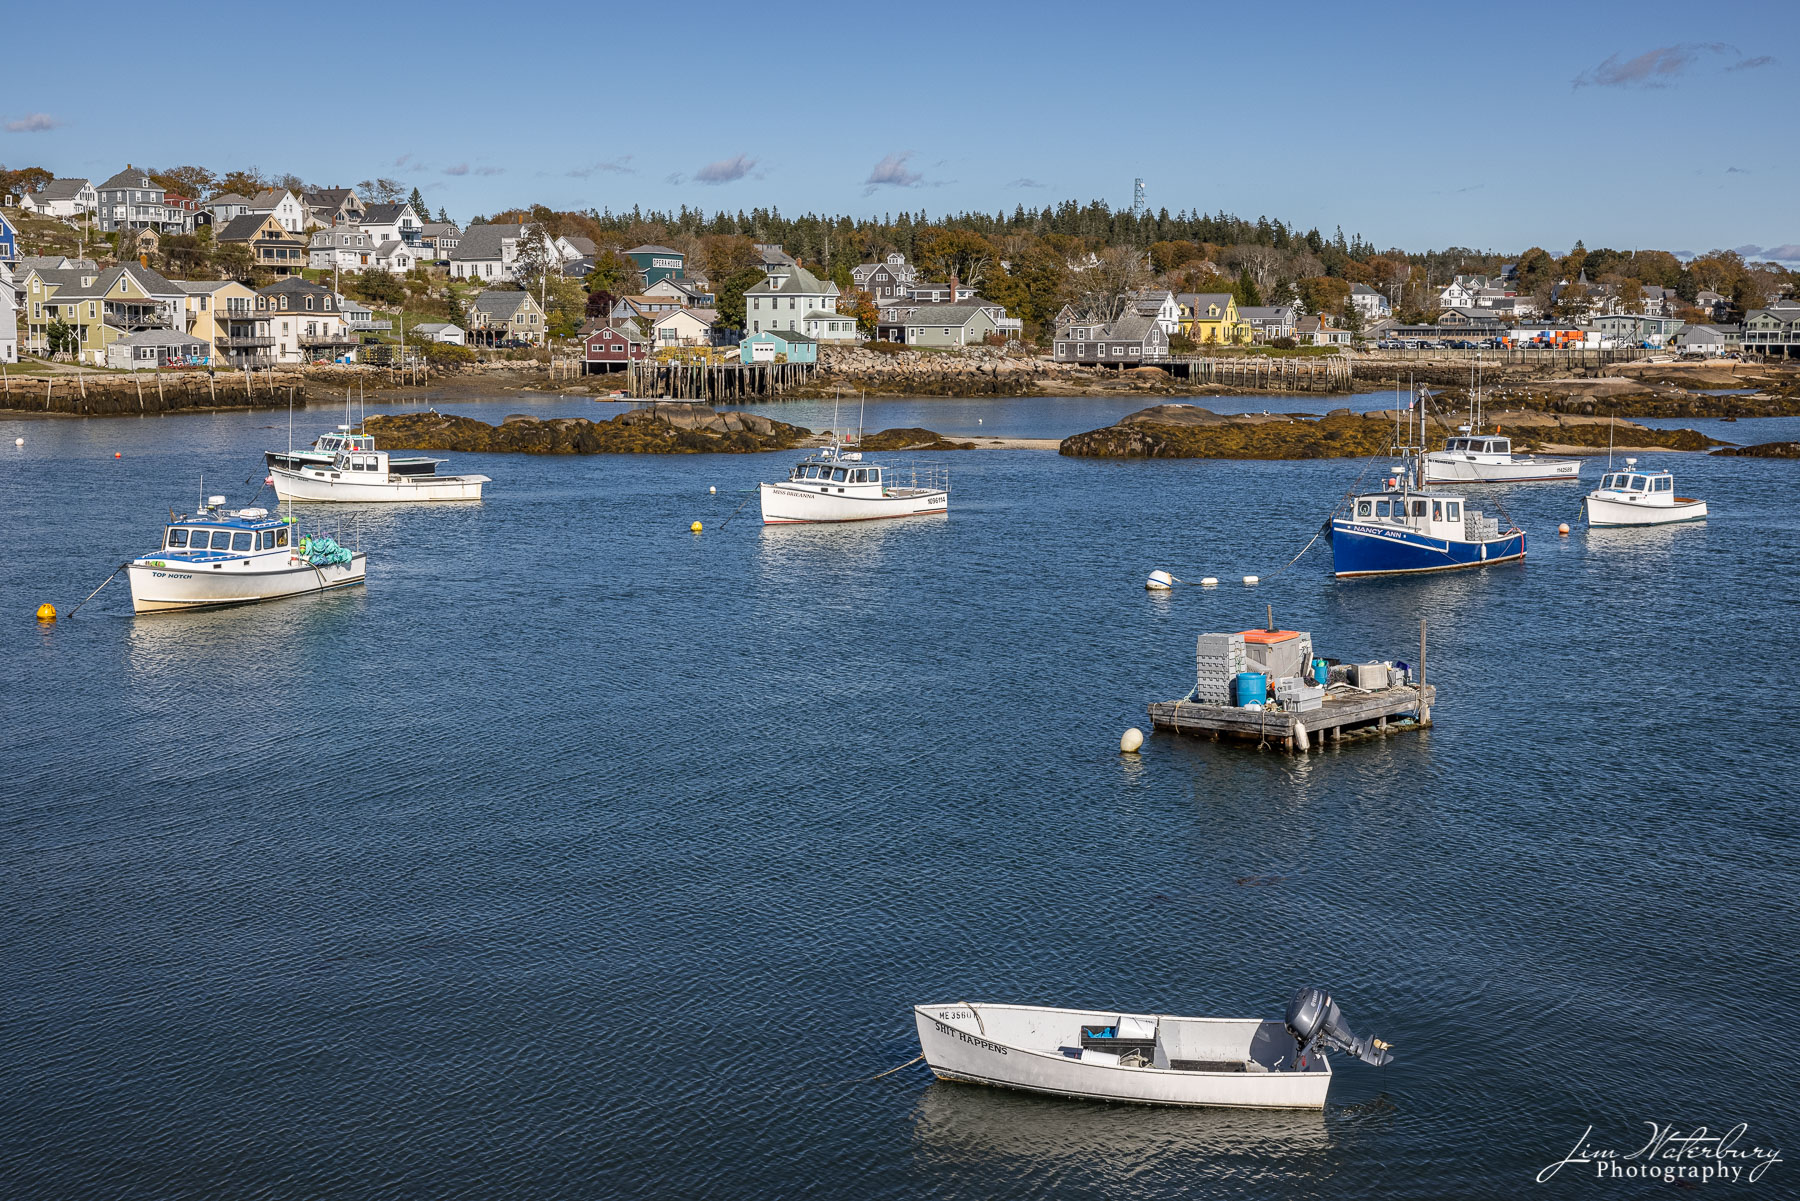 Boats and houses in the small harbor of Stonington, Maine.